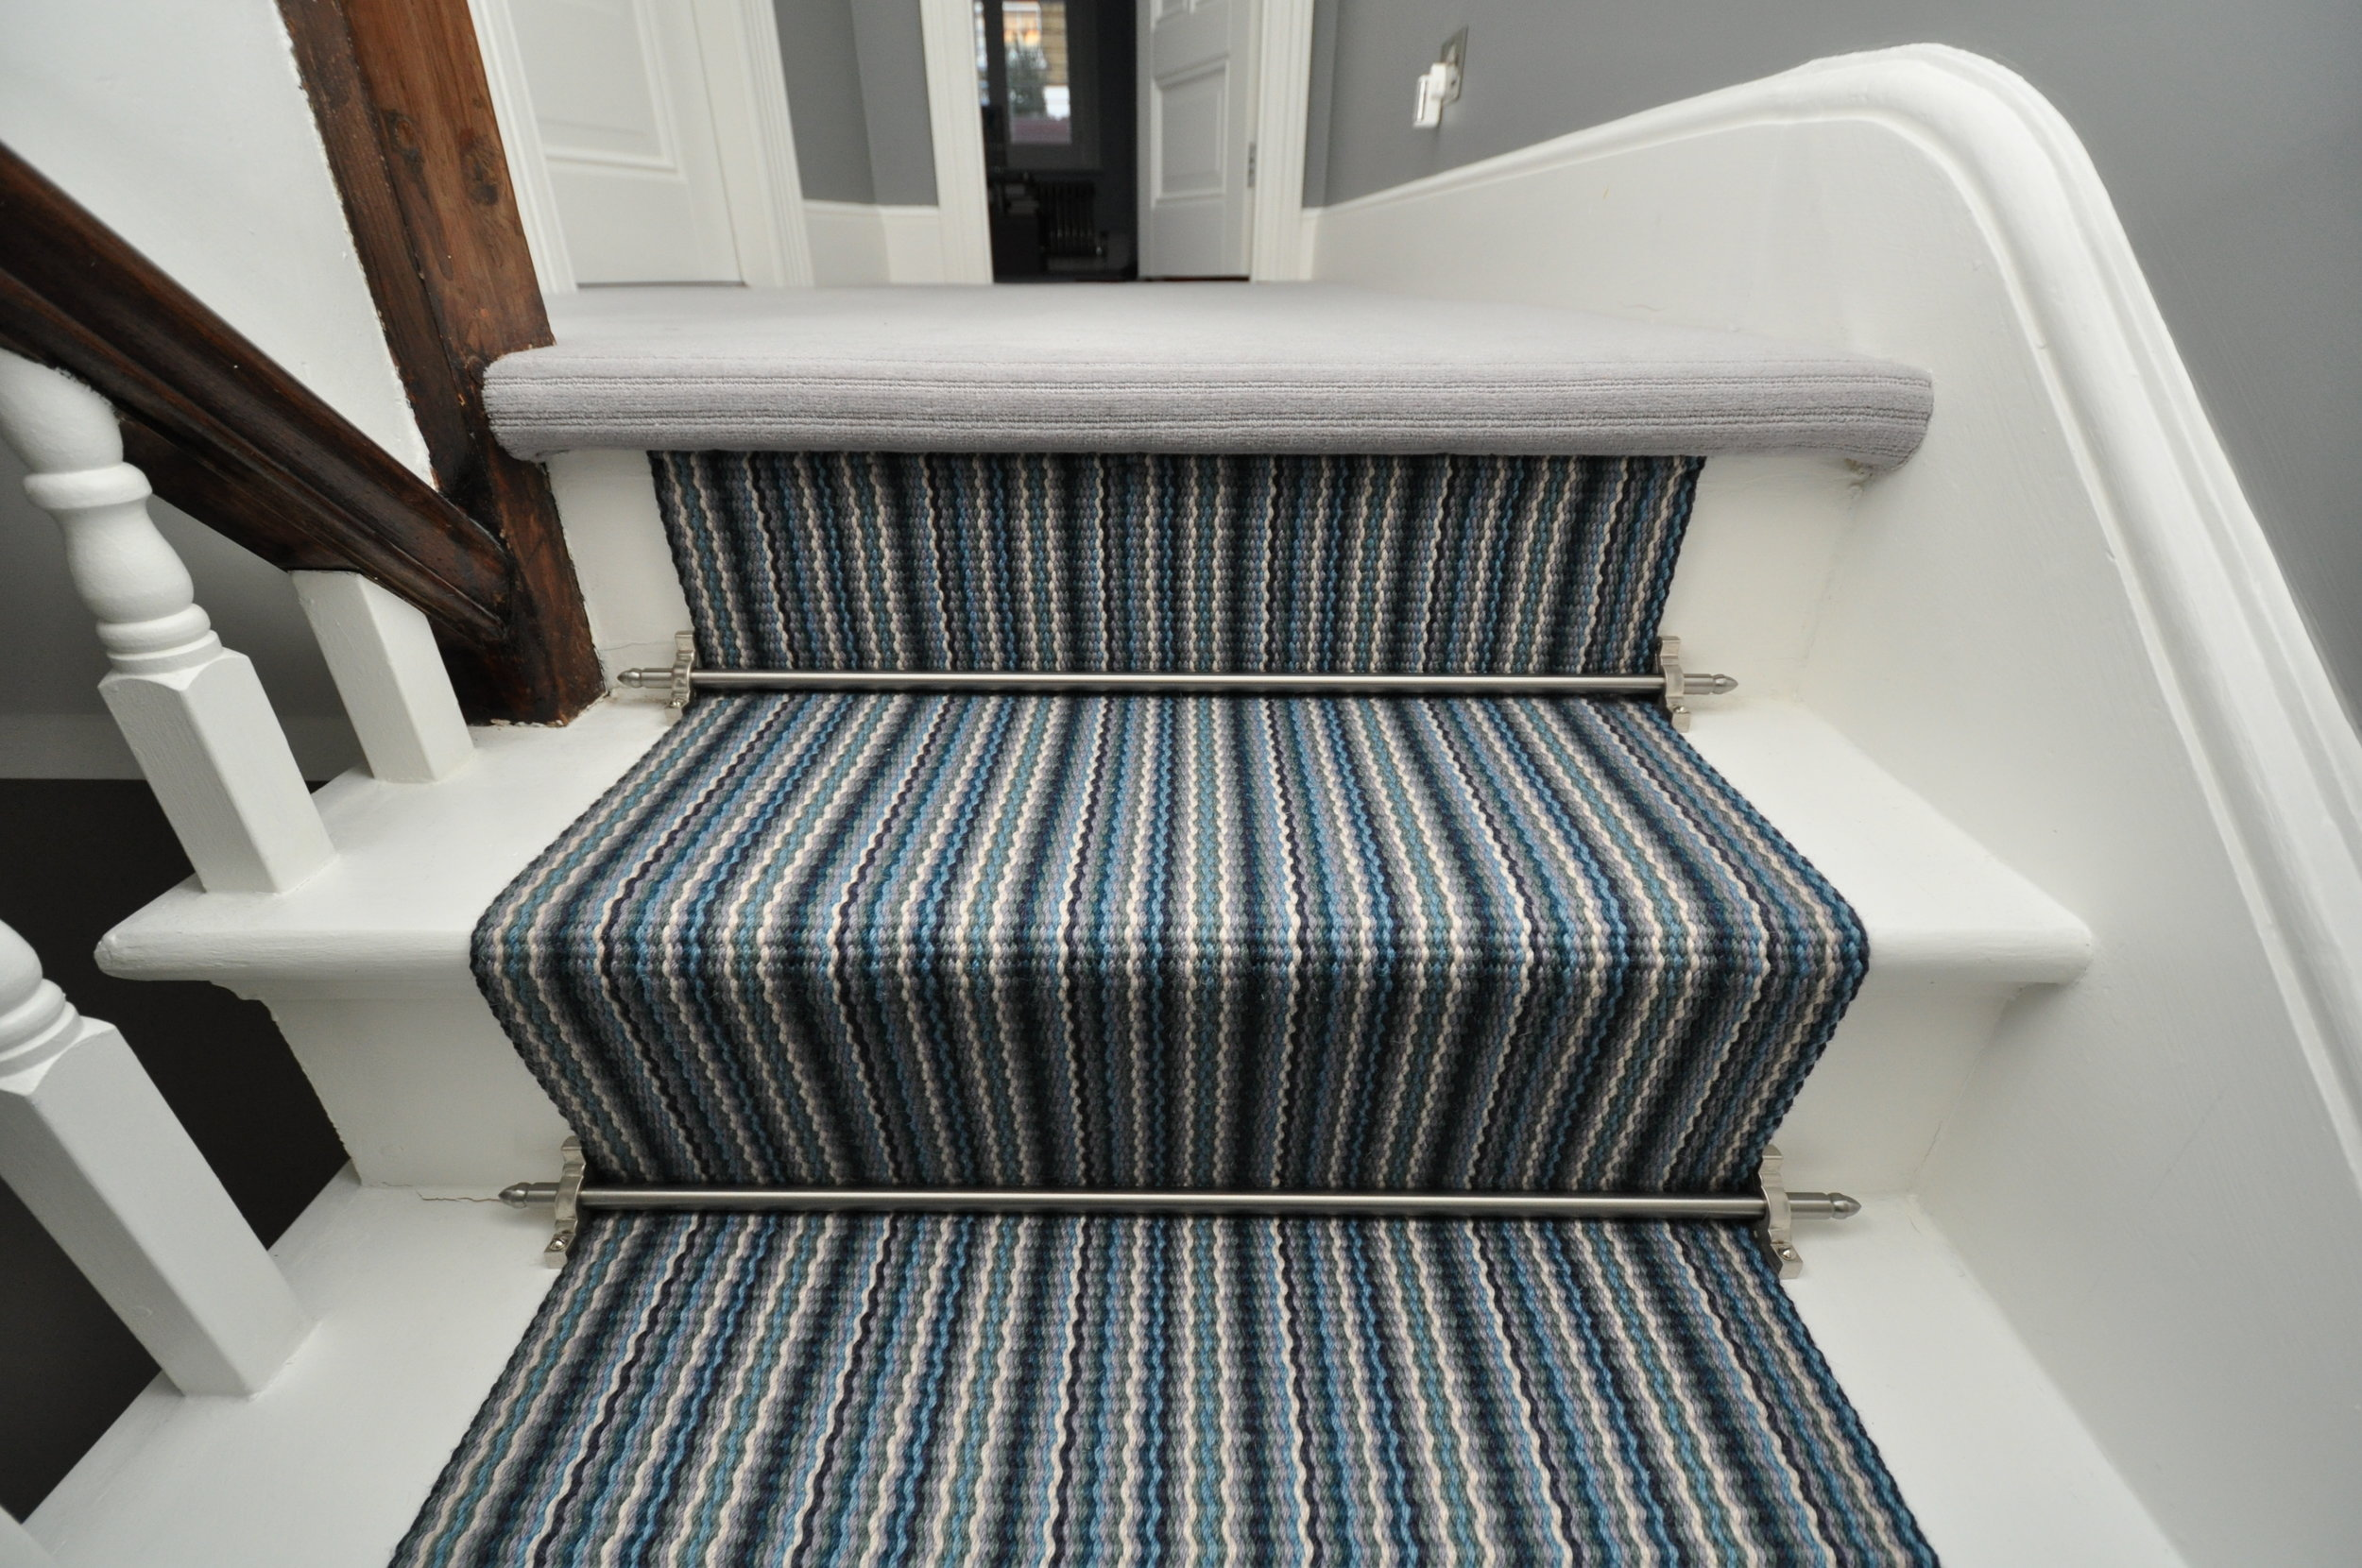 flatweave-stair-runners-london-bowloom-carpet-geometric-off-the-loom-DSC_1532.jpg